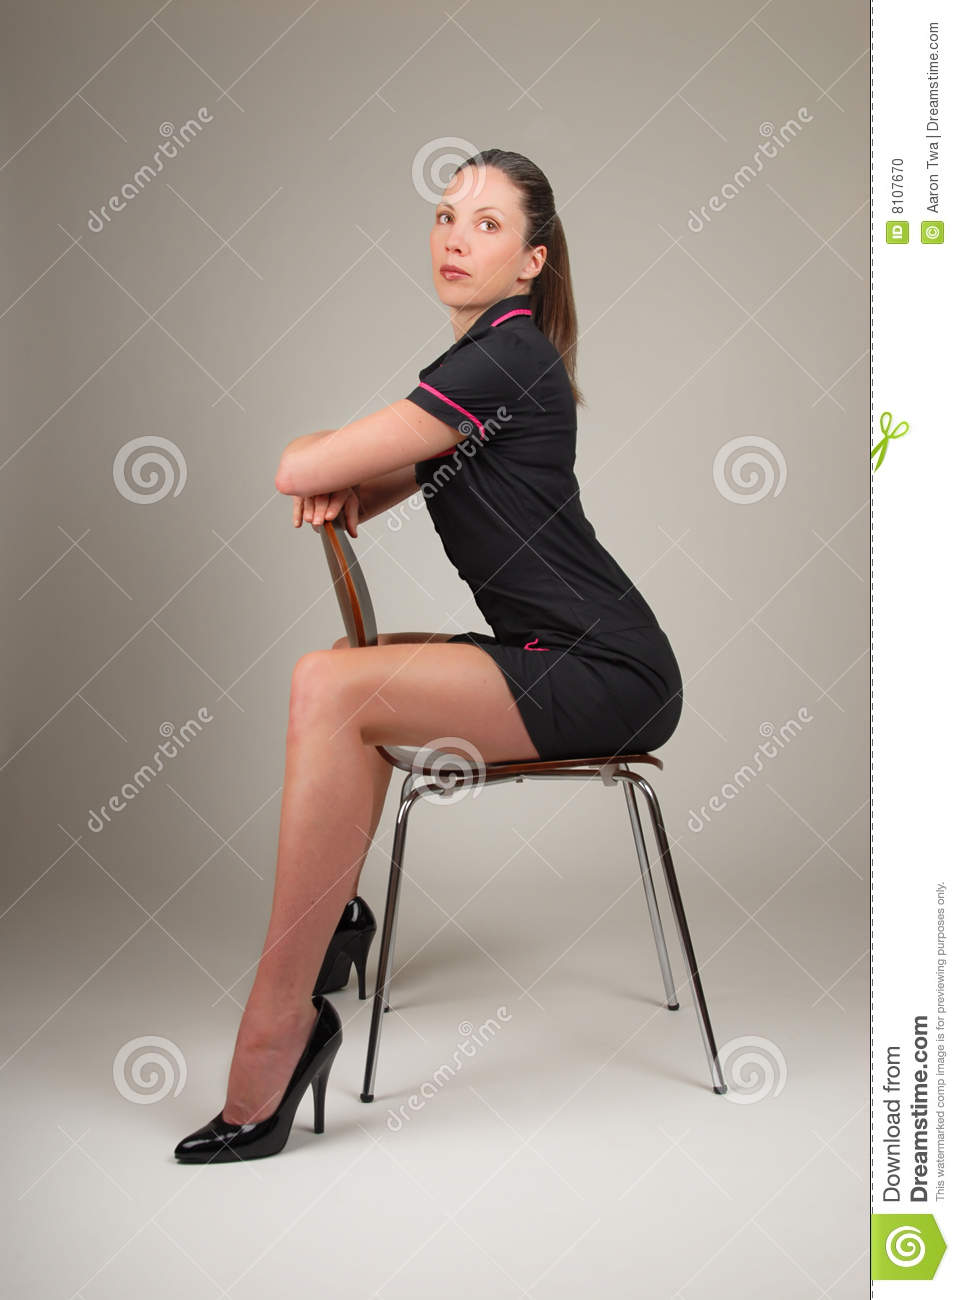 Woman Sitting On Modern Chair Stock Photo - Image: 8107670